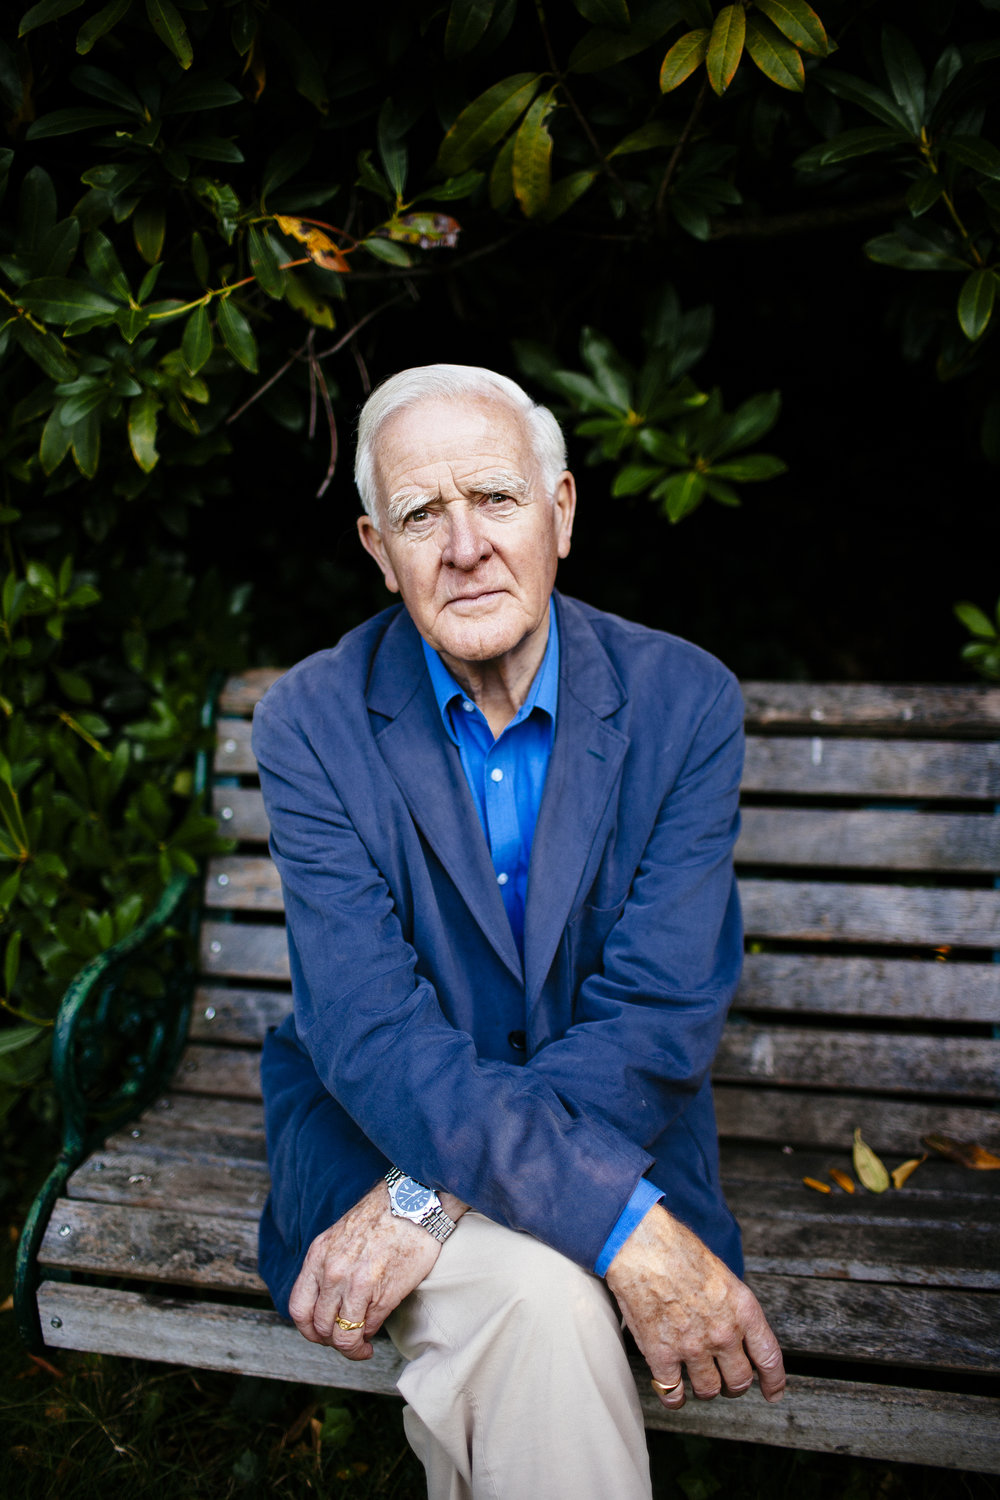 British author David Cornwell, who goes by the pen name John le Carré, poses for a photograph on a bench near his home in Hampstead, London, Thursday, Sept. 25, 2008. (David Azia for The New York Times)